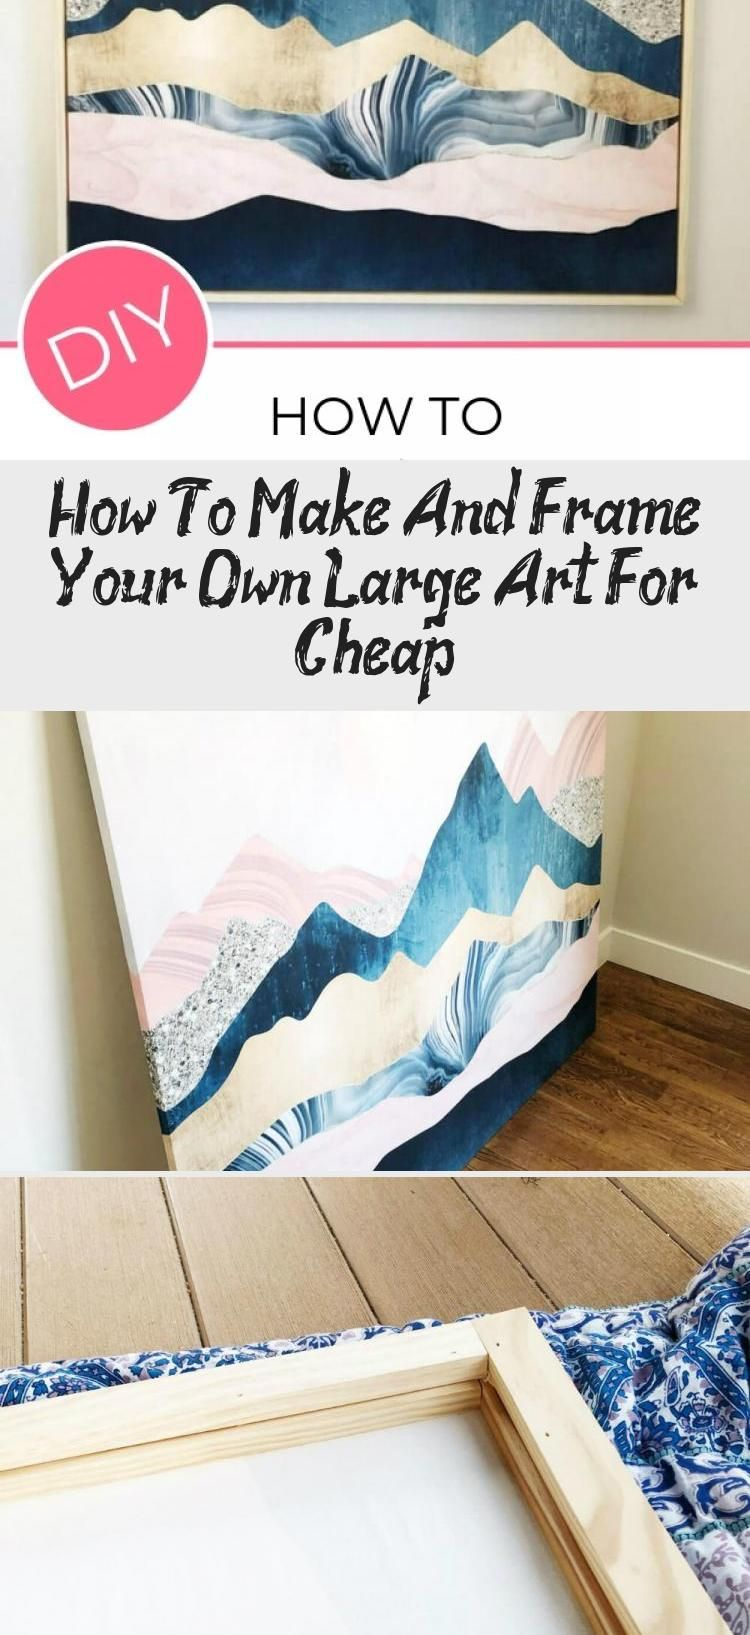 HOW TO MAKE AND FRAME YOUR OWN LARGE ART FOR CHEAP CANVAS